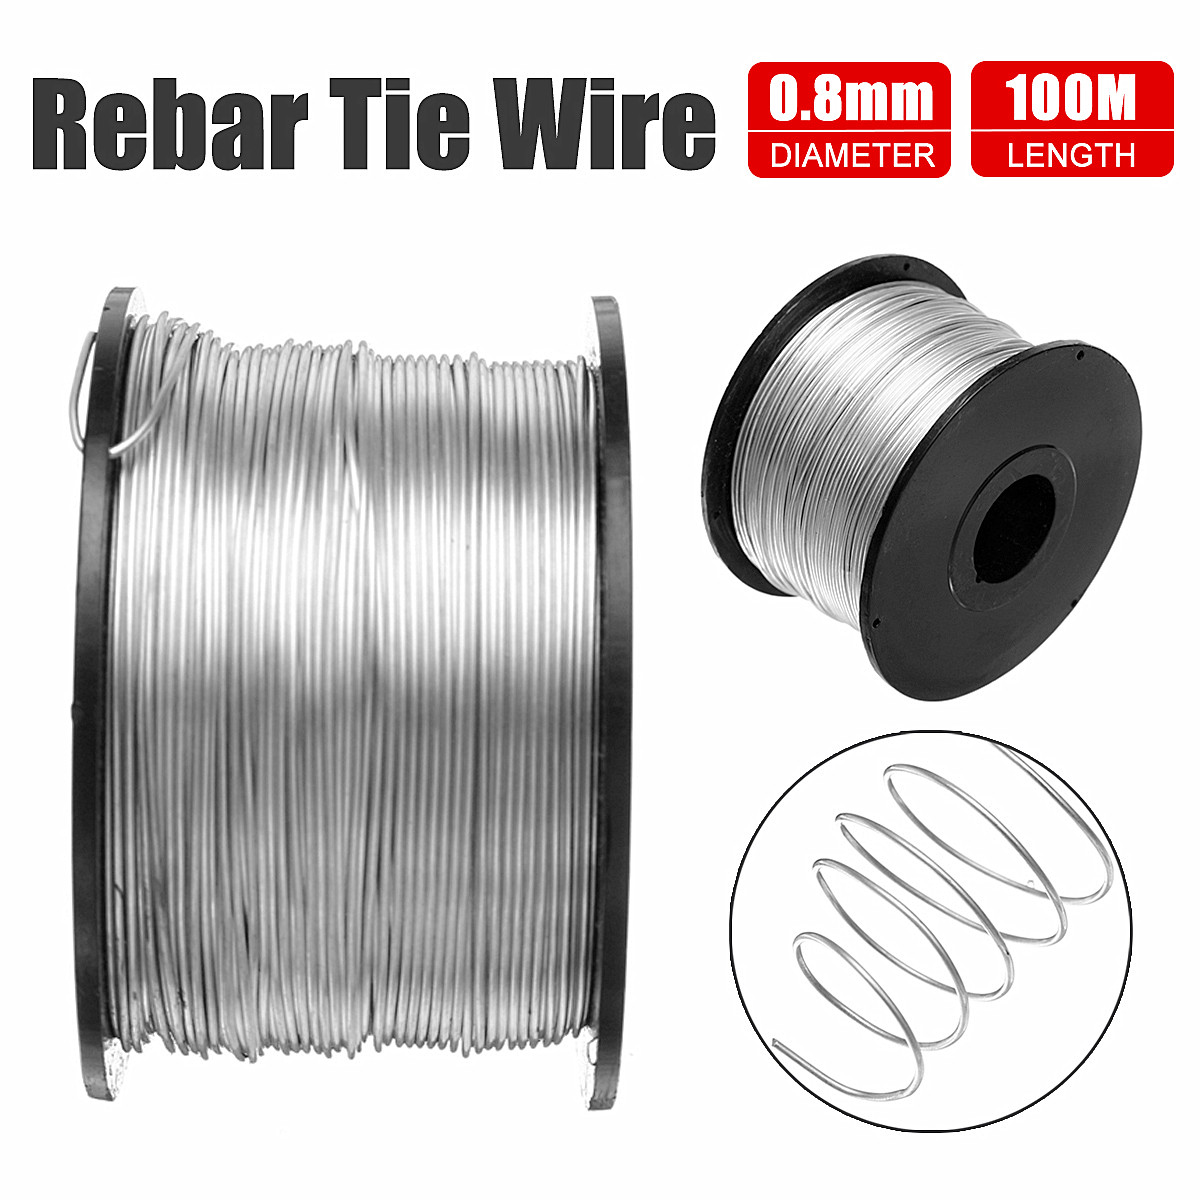 Awesome Rebar Tie Wire Component - Wiring Schematics and Diagrams ...